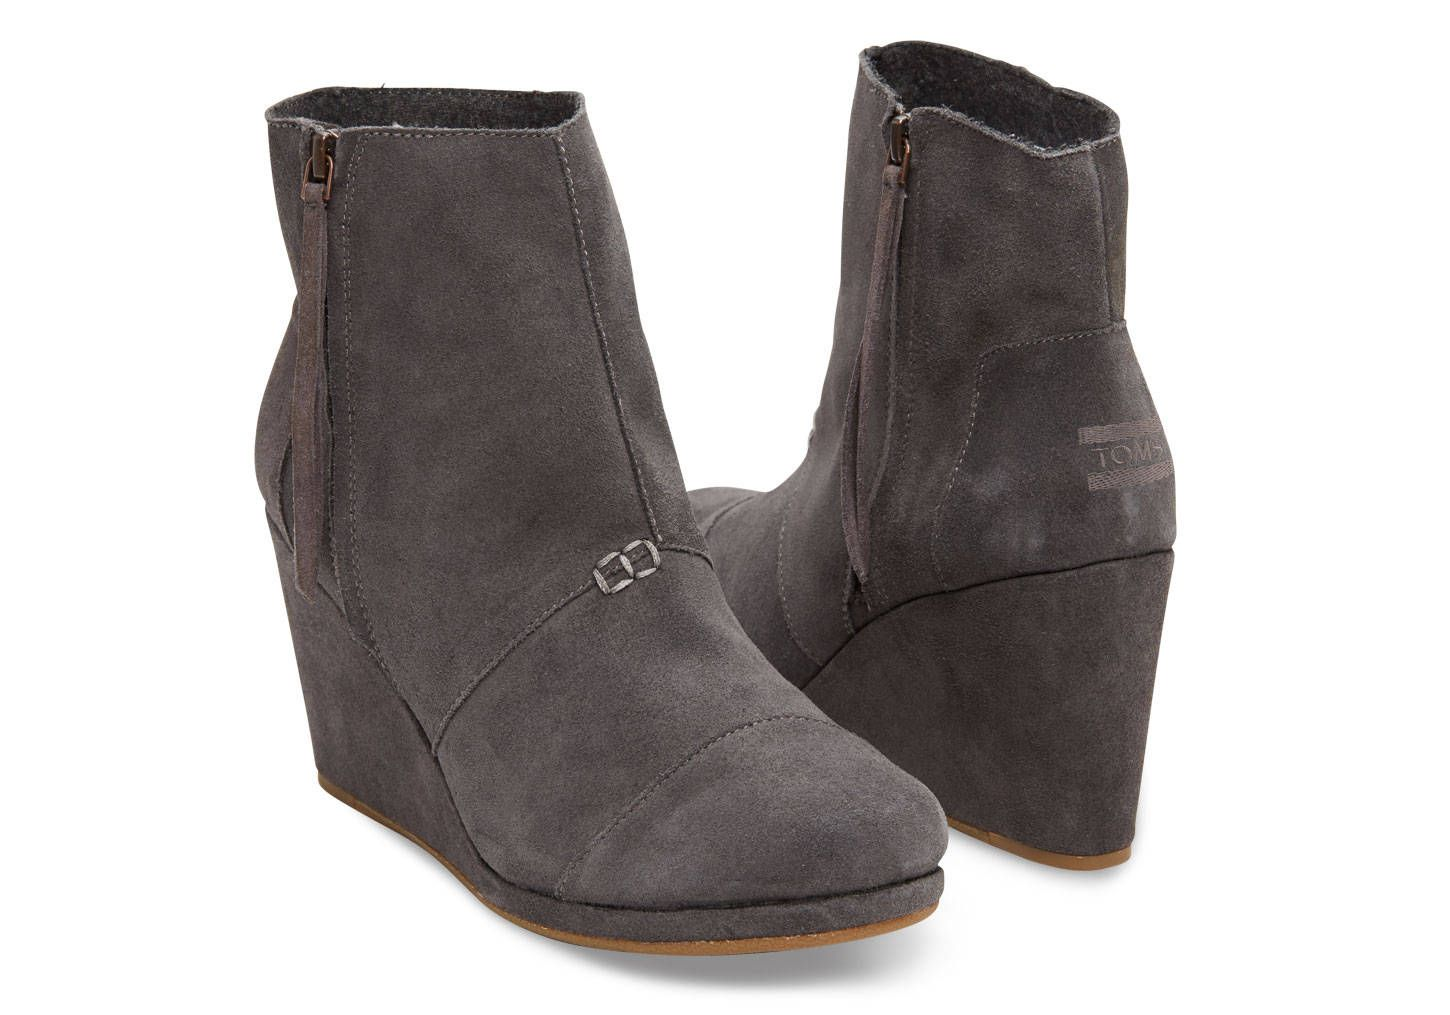 d8bc9b45156 TOMS DARK GREY SUEDE WOMEN S DESERT WEDGE  98 To order fill out the Shop  Now tab on our Facebook Page or call 218.722.3200. We ship for  7.95 or  will hold ...